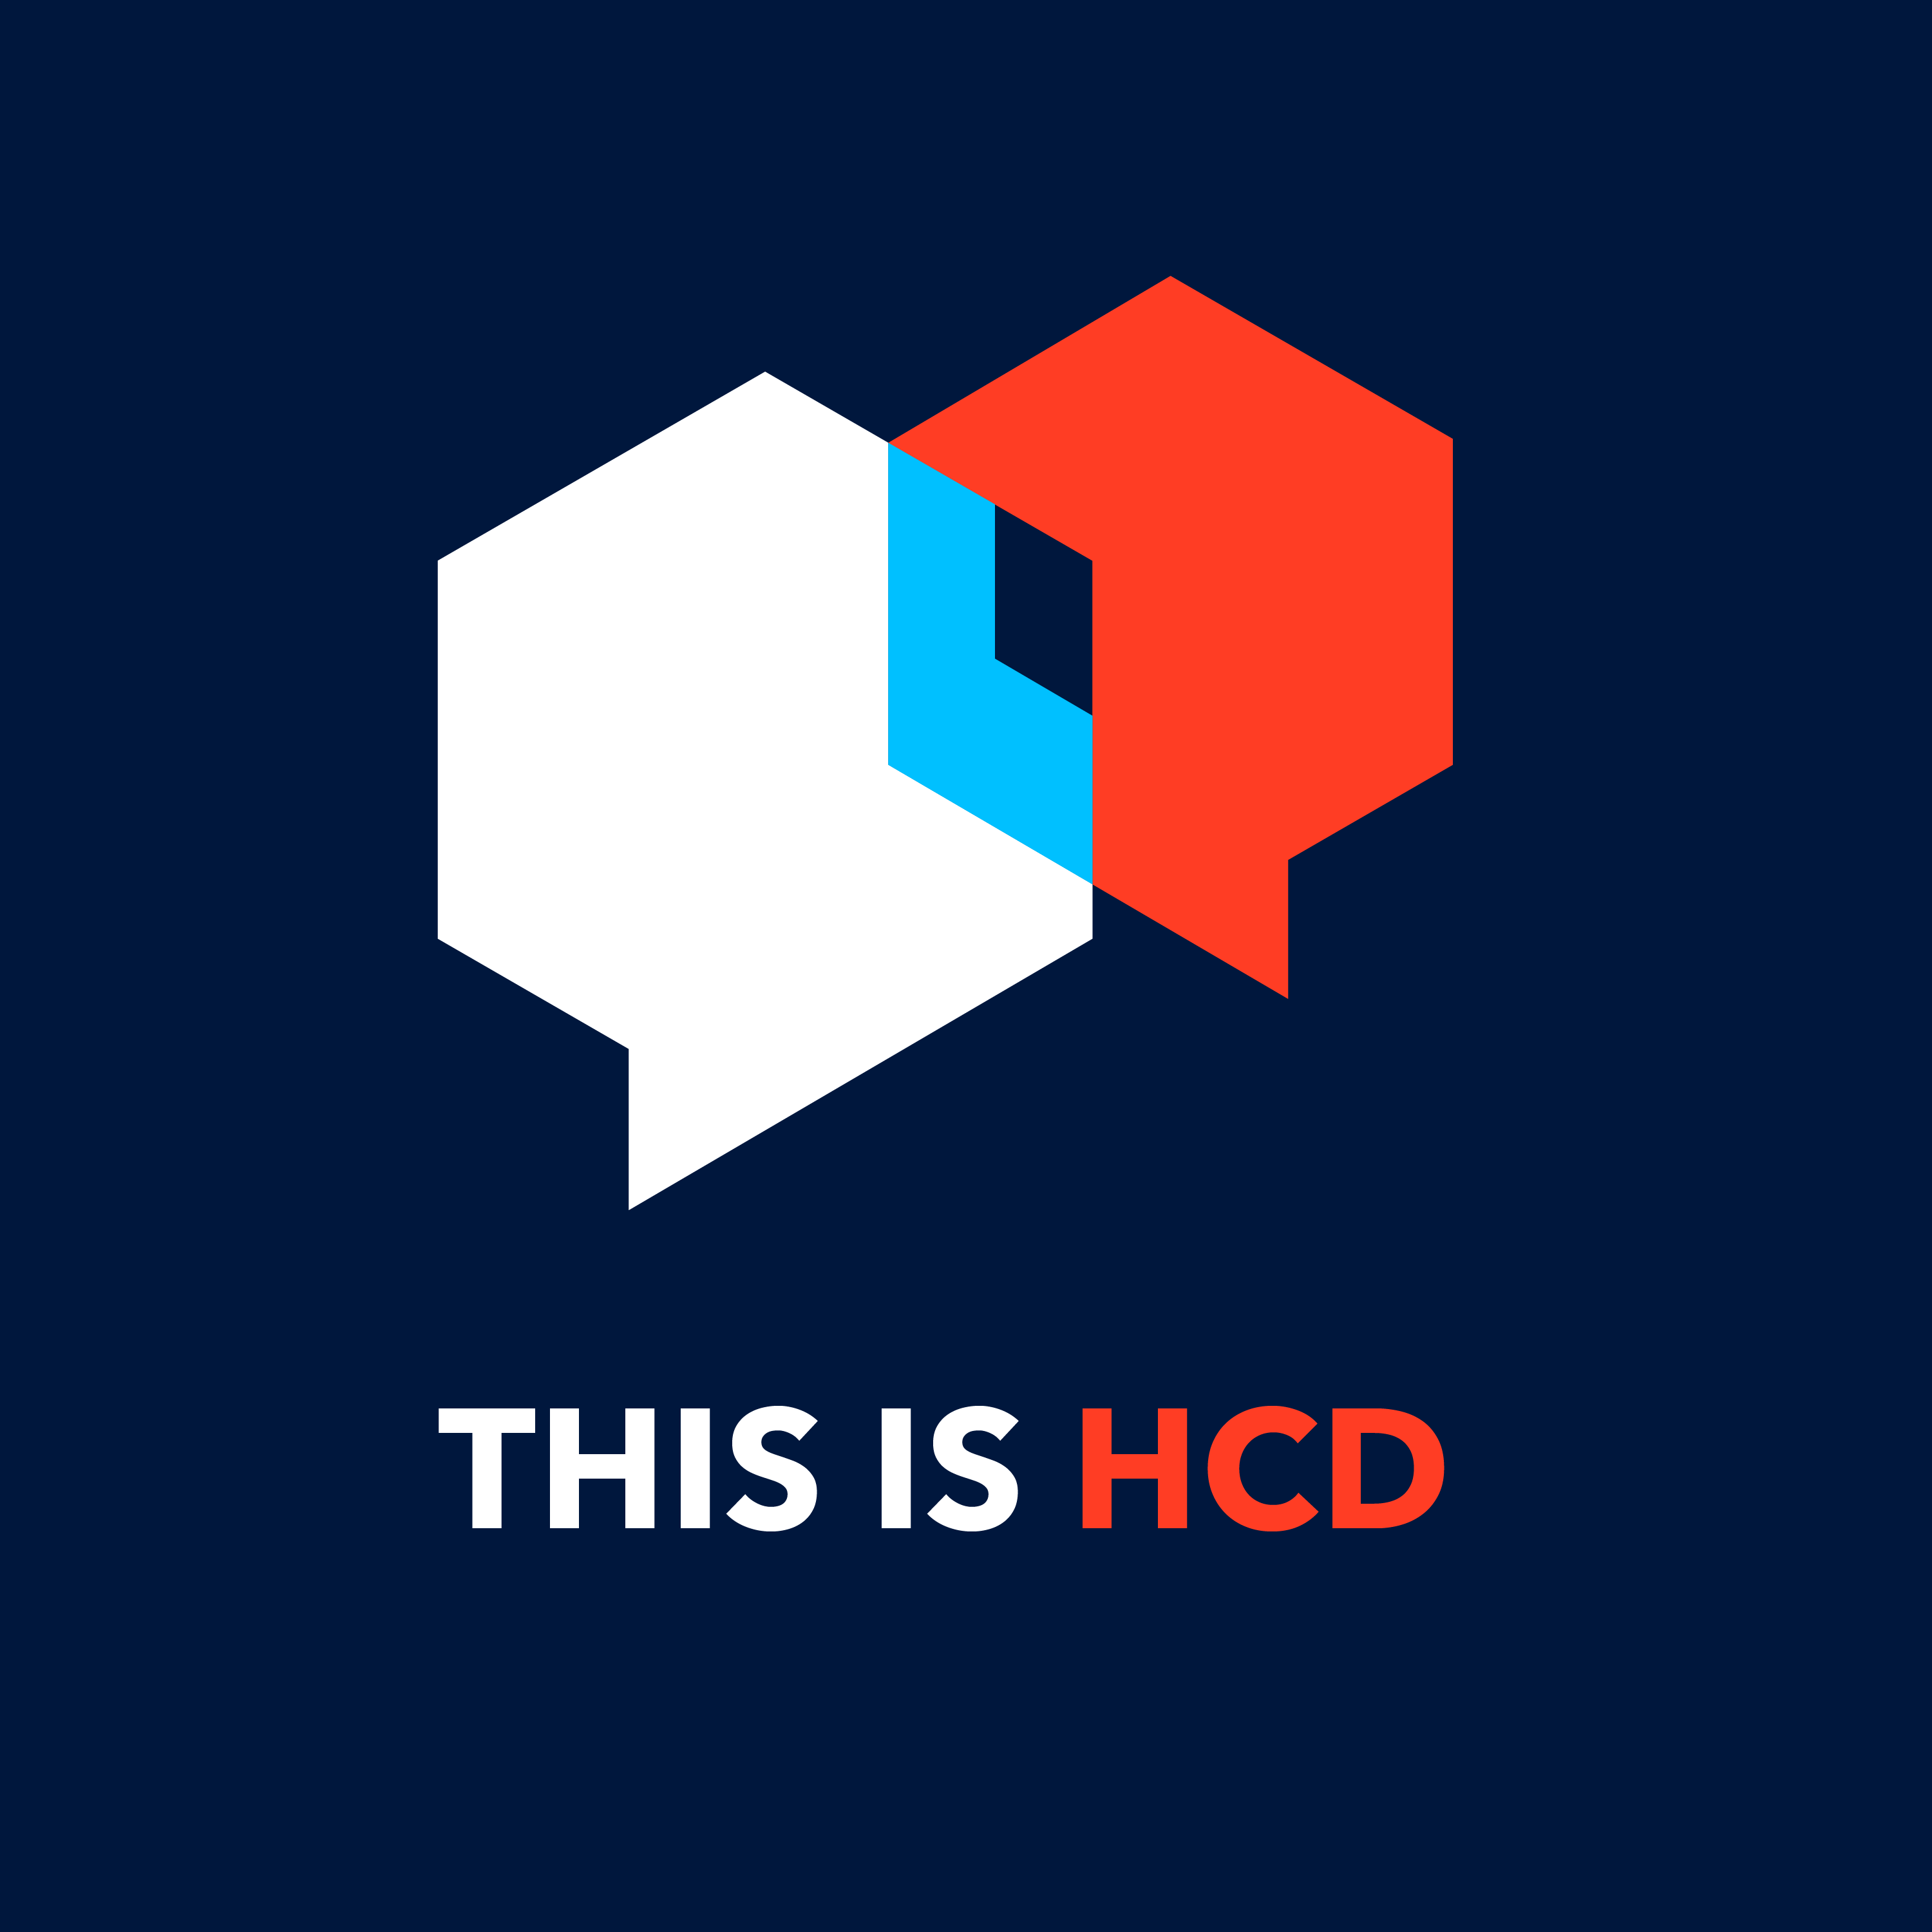 This is HCD - The Human Centered Design Network